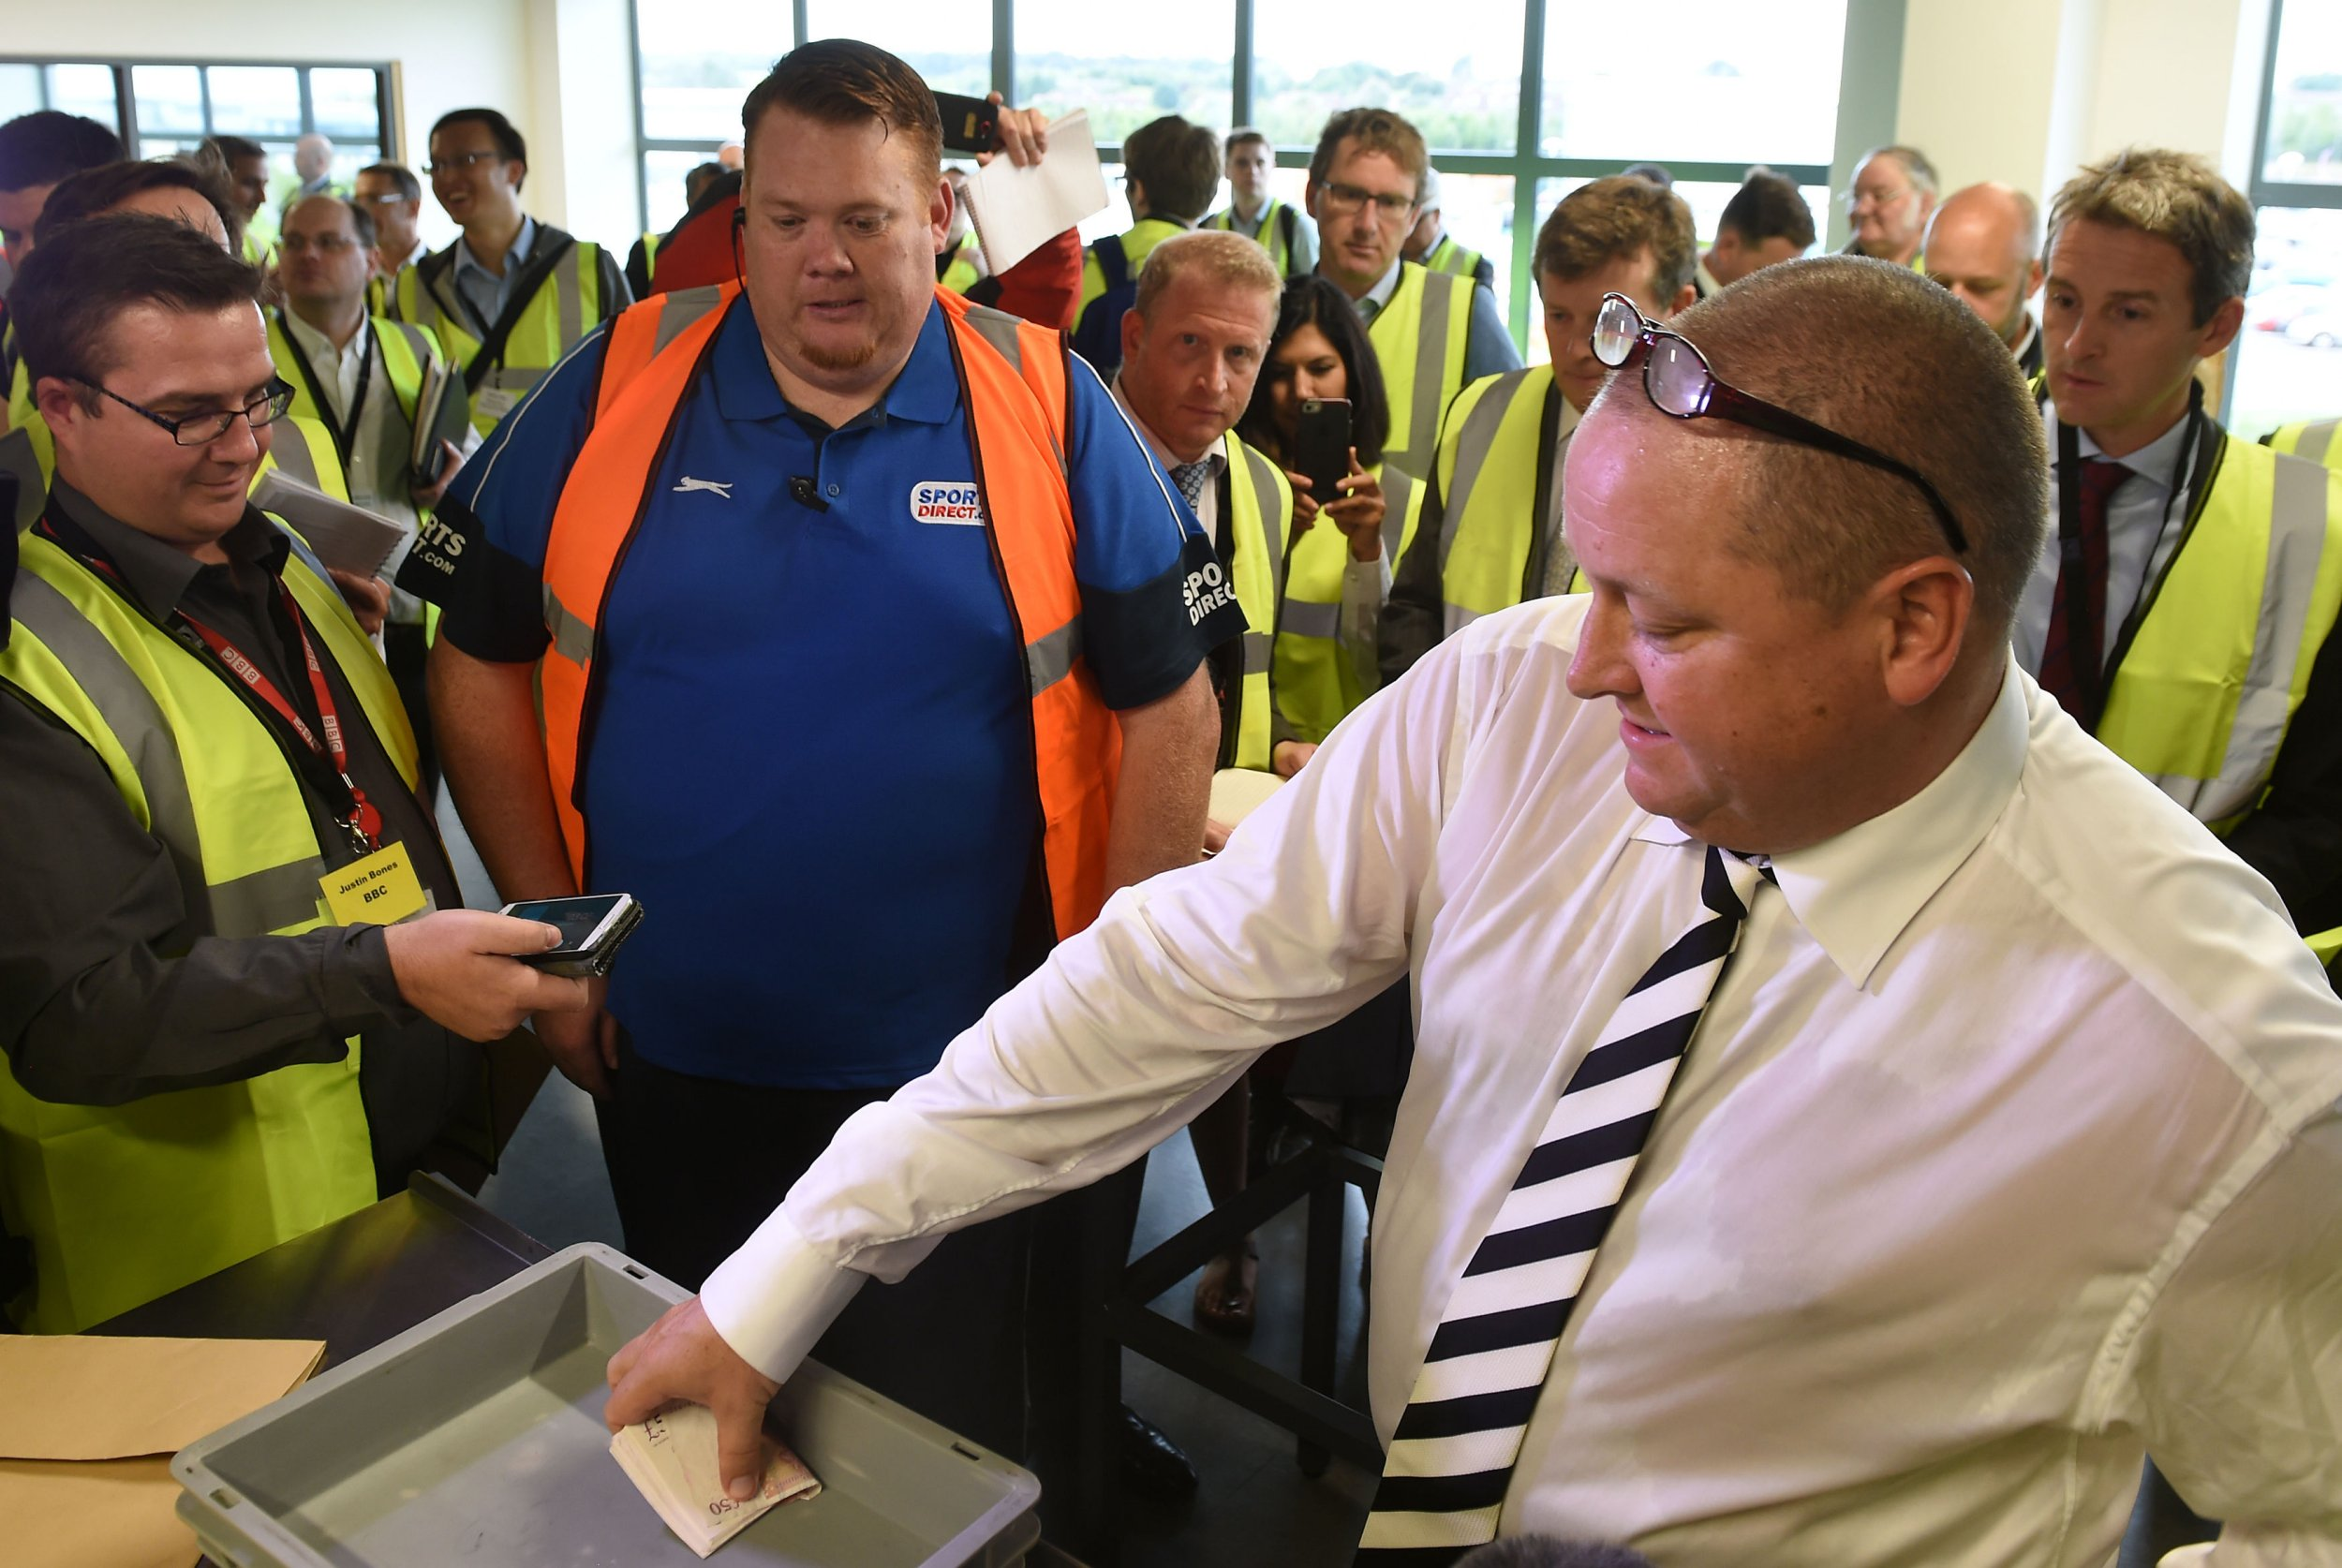 Sports Direct founder Mike Ashley empties his pockets of bank notes during a mock search at the Sports Direct headquarters in Shirebrook, Derbyshire. PRESS ASSOCIATION Photo. Picture date: Wednesday September 7, 2016. See PA story CITY SportsDirect. Photo credit should read: Joe Giddens/PA Wire